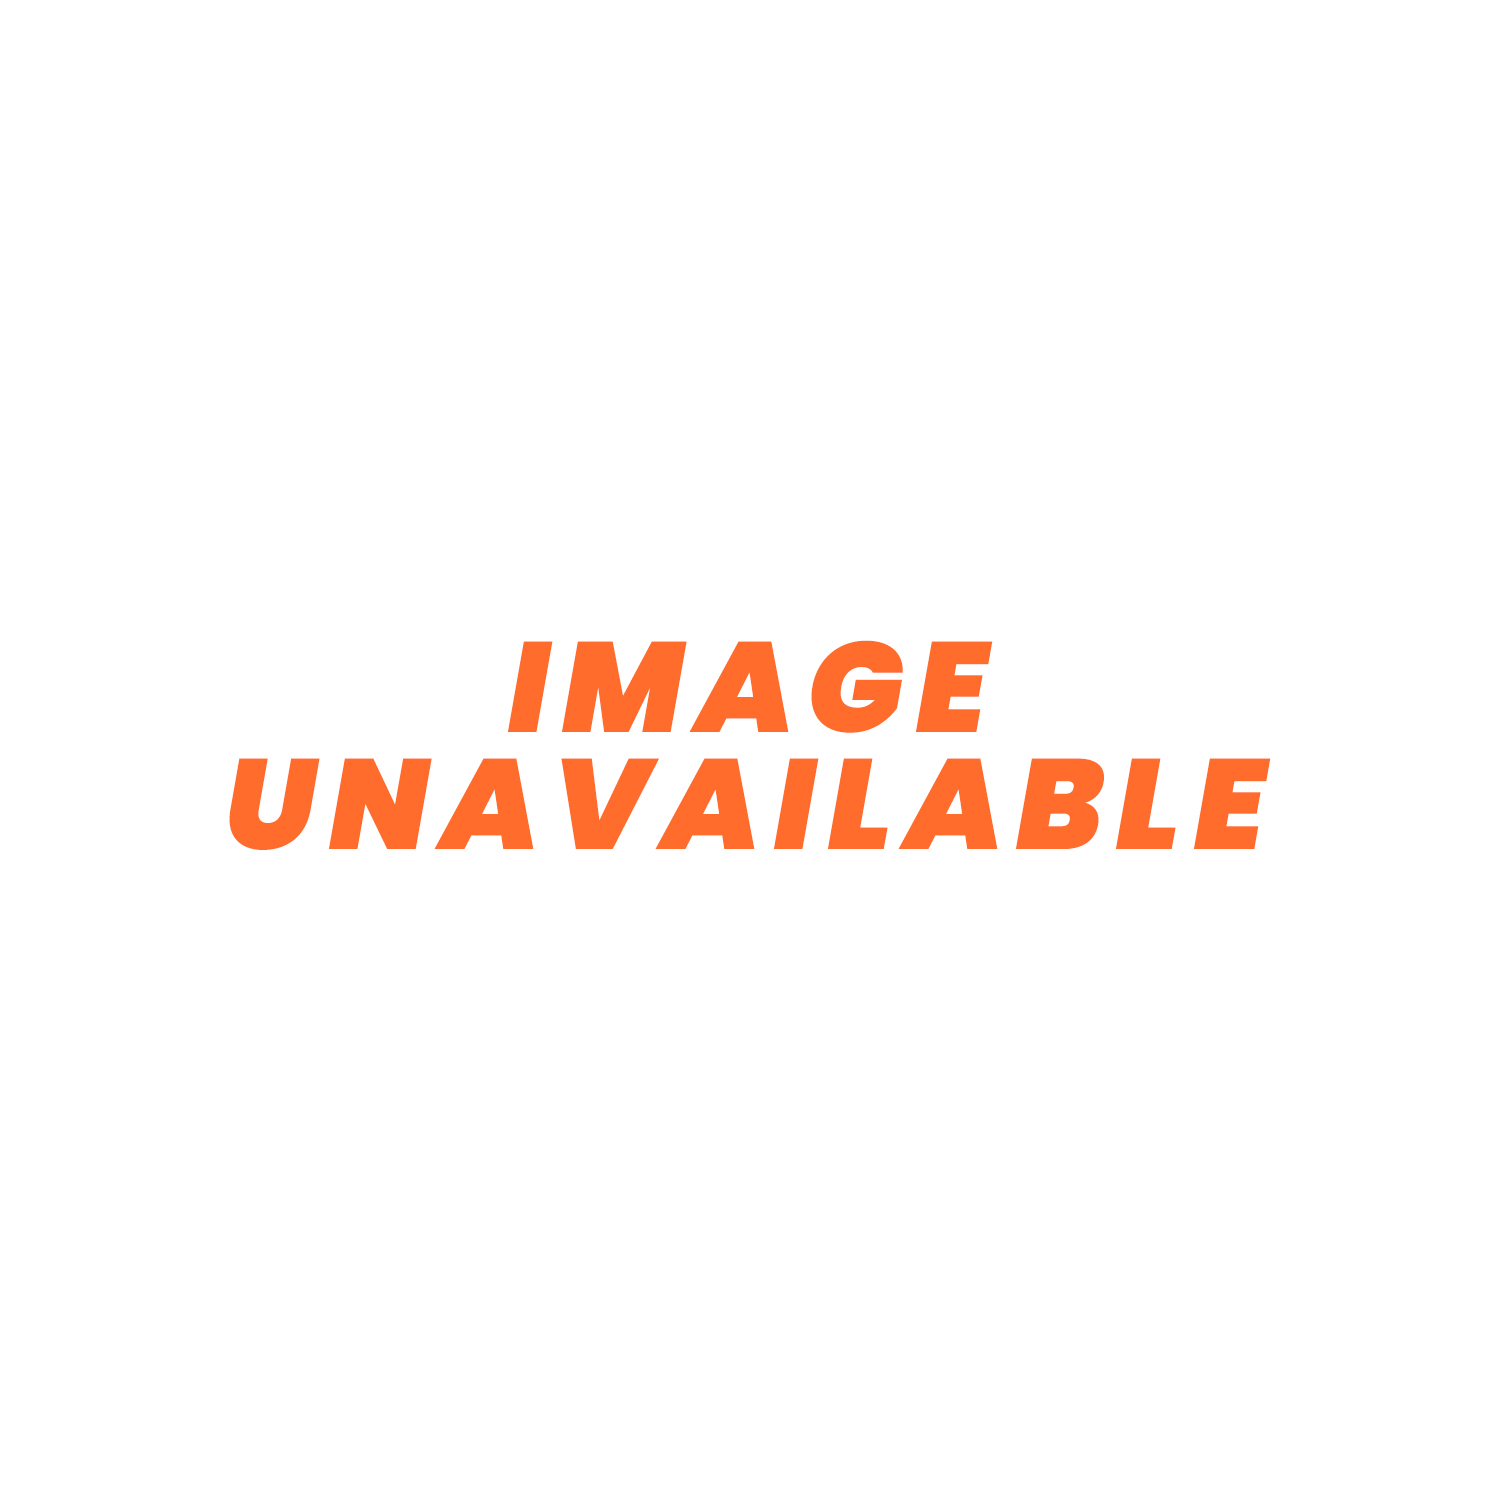 002-B46-02 SPAL Centrifugal Blower 378cfm Front